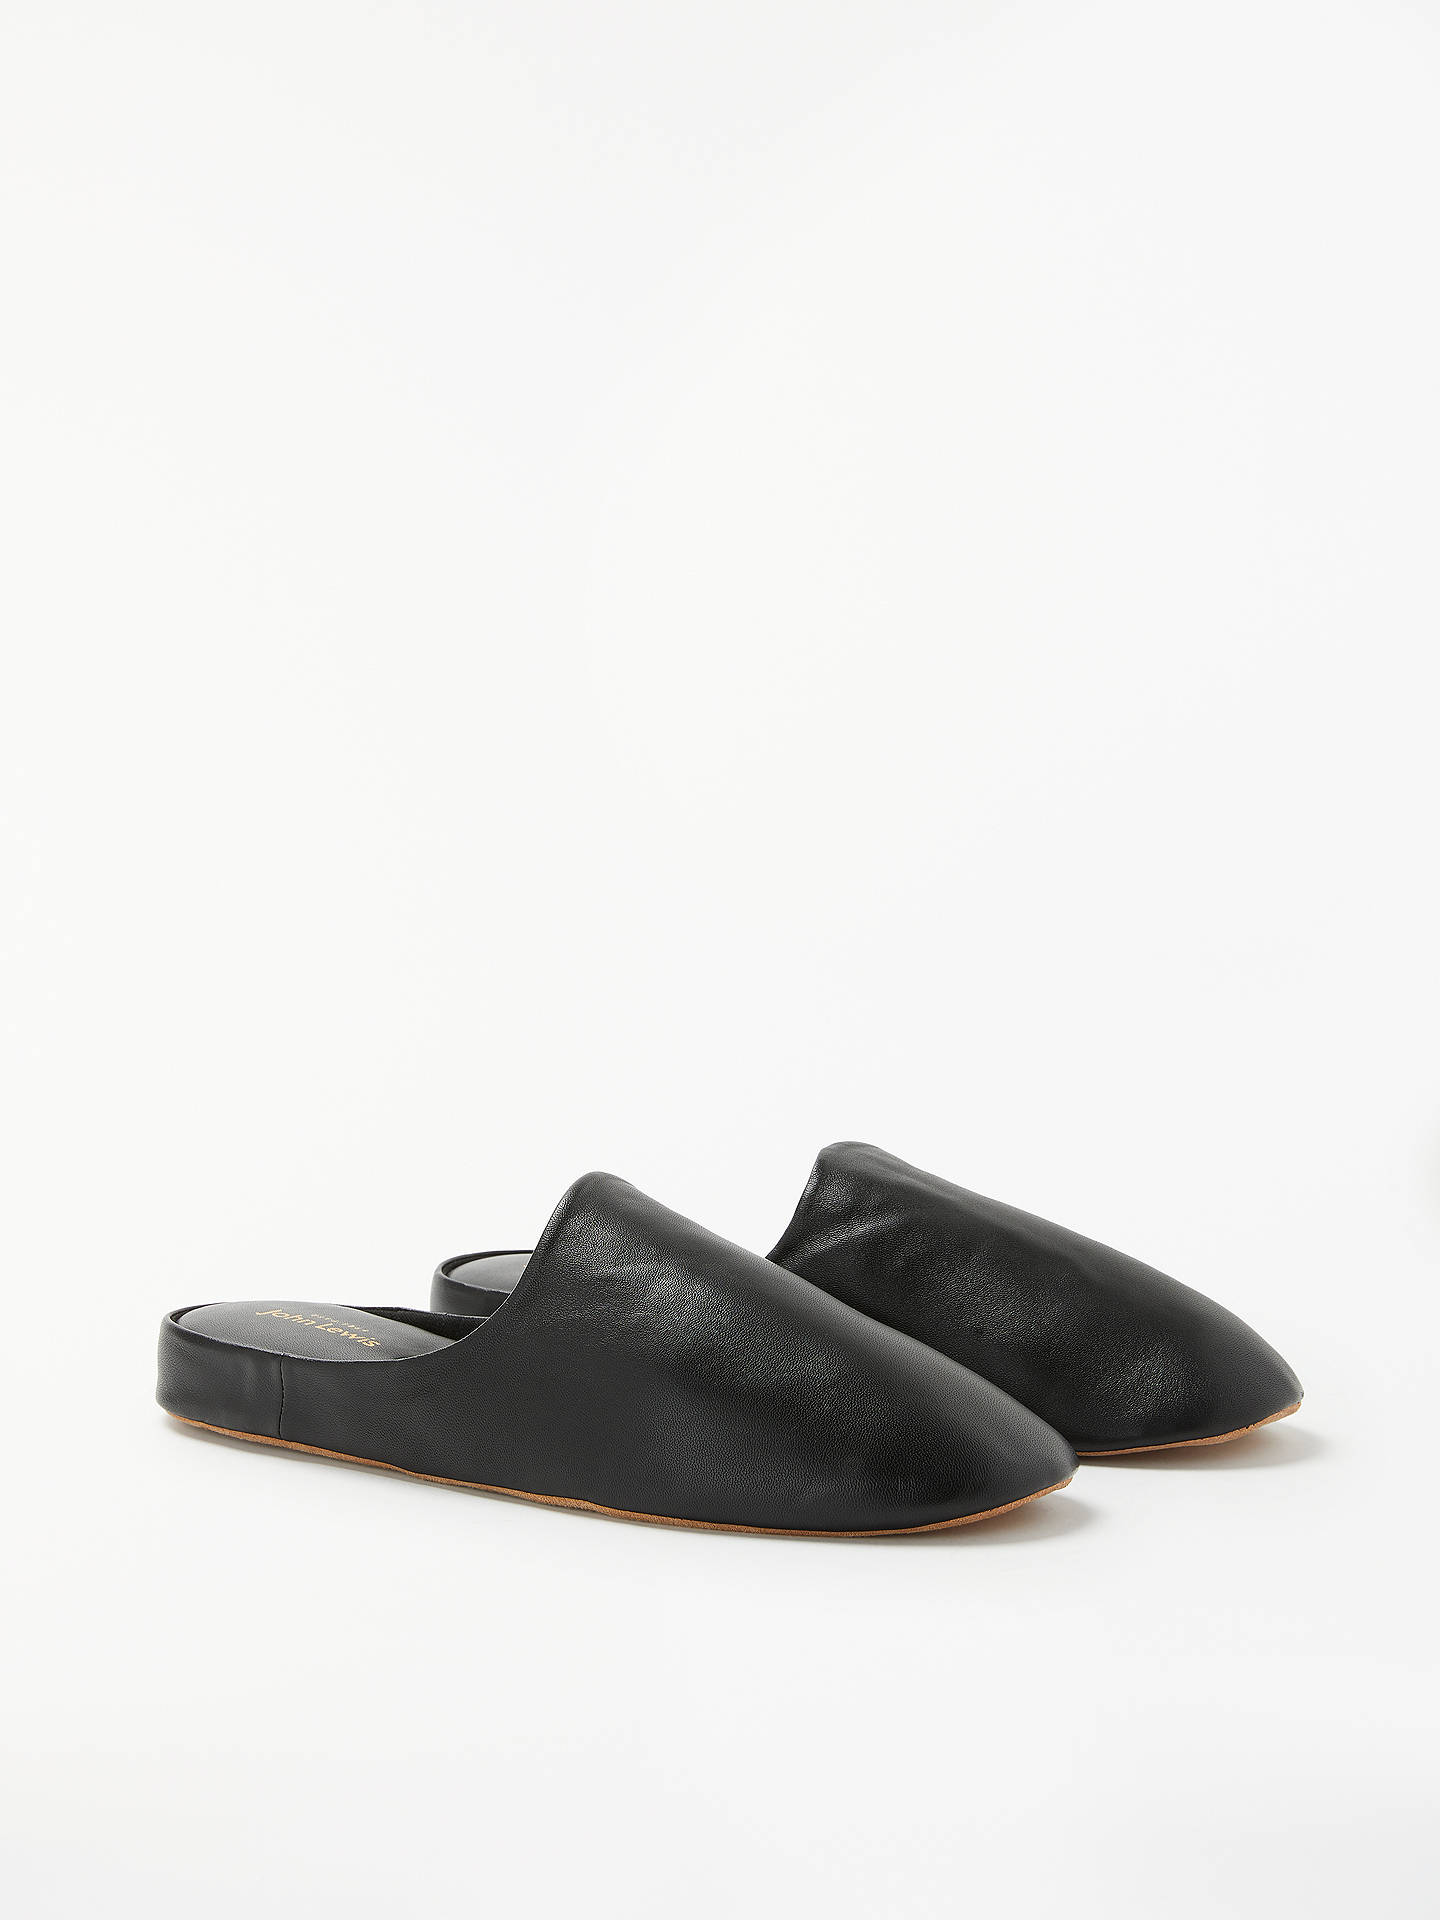 Buy John Lewis & Partners Madrid Leather Mule Slippers, Black, 9 Online at johnlewis.com